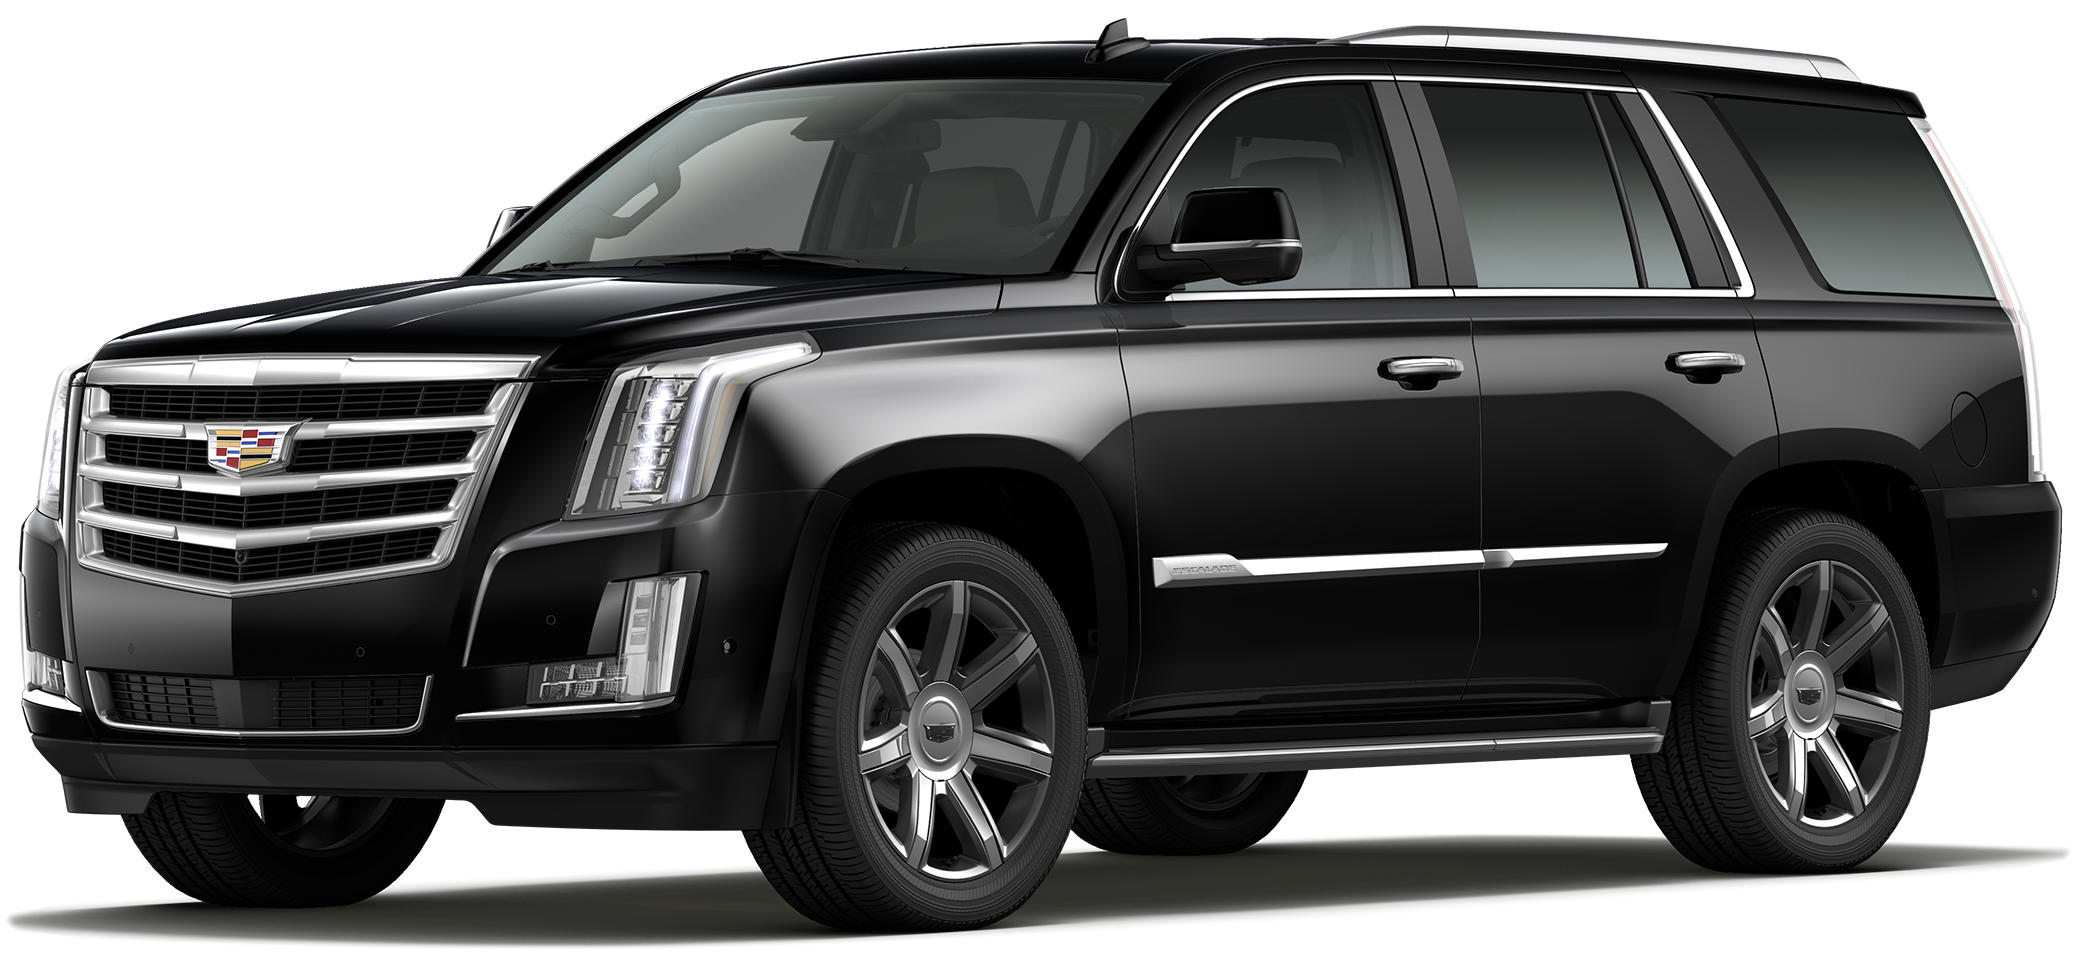 2020 CADILLAC Escalade Incentives, Specials & Offers In